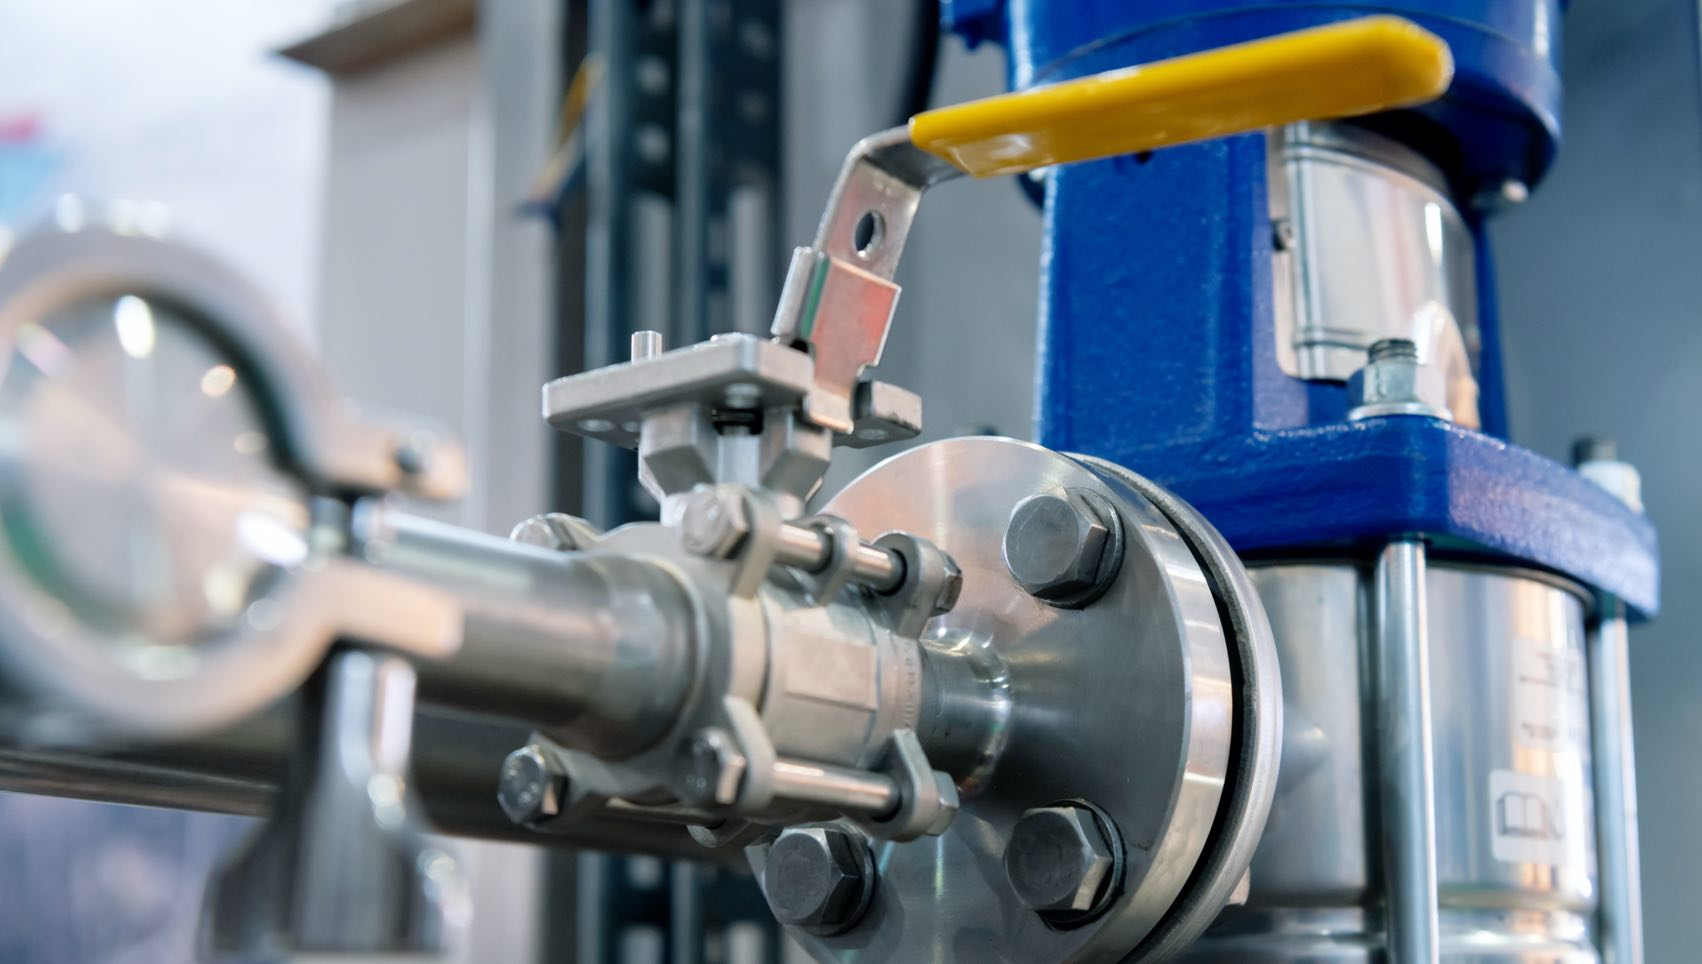 valves in industrial plant